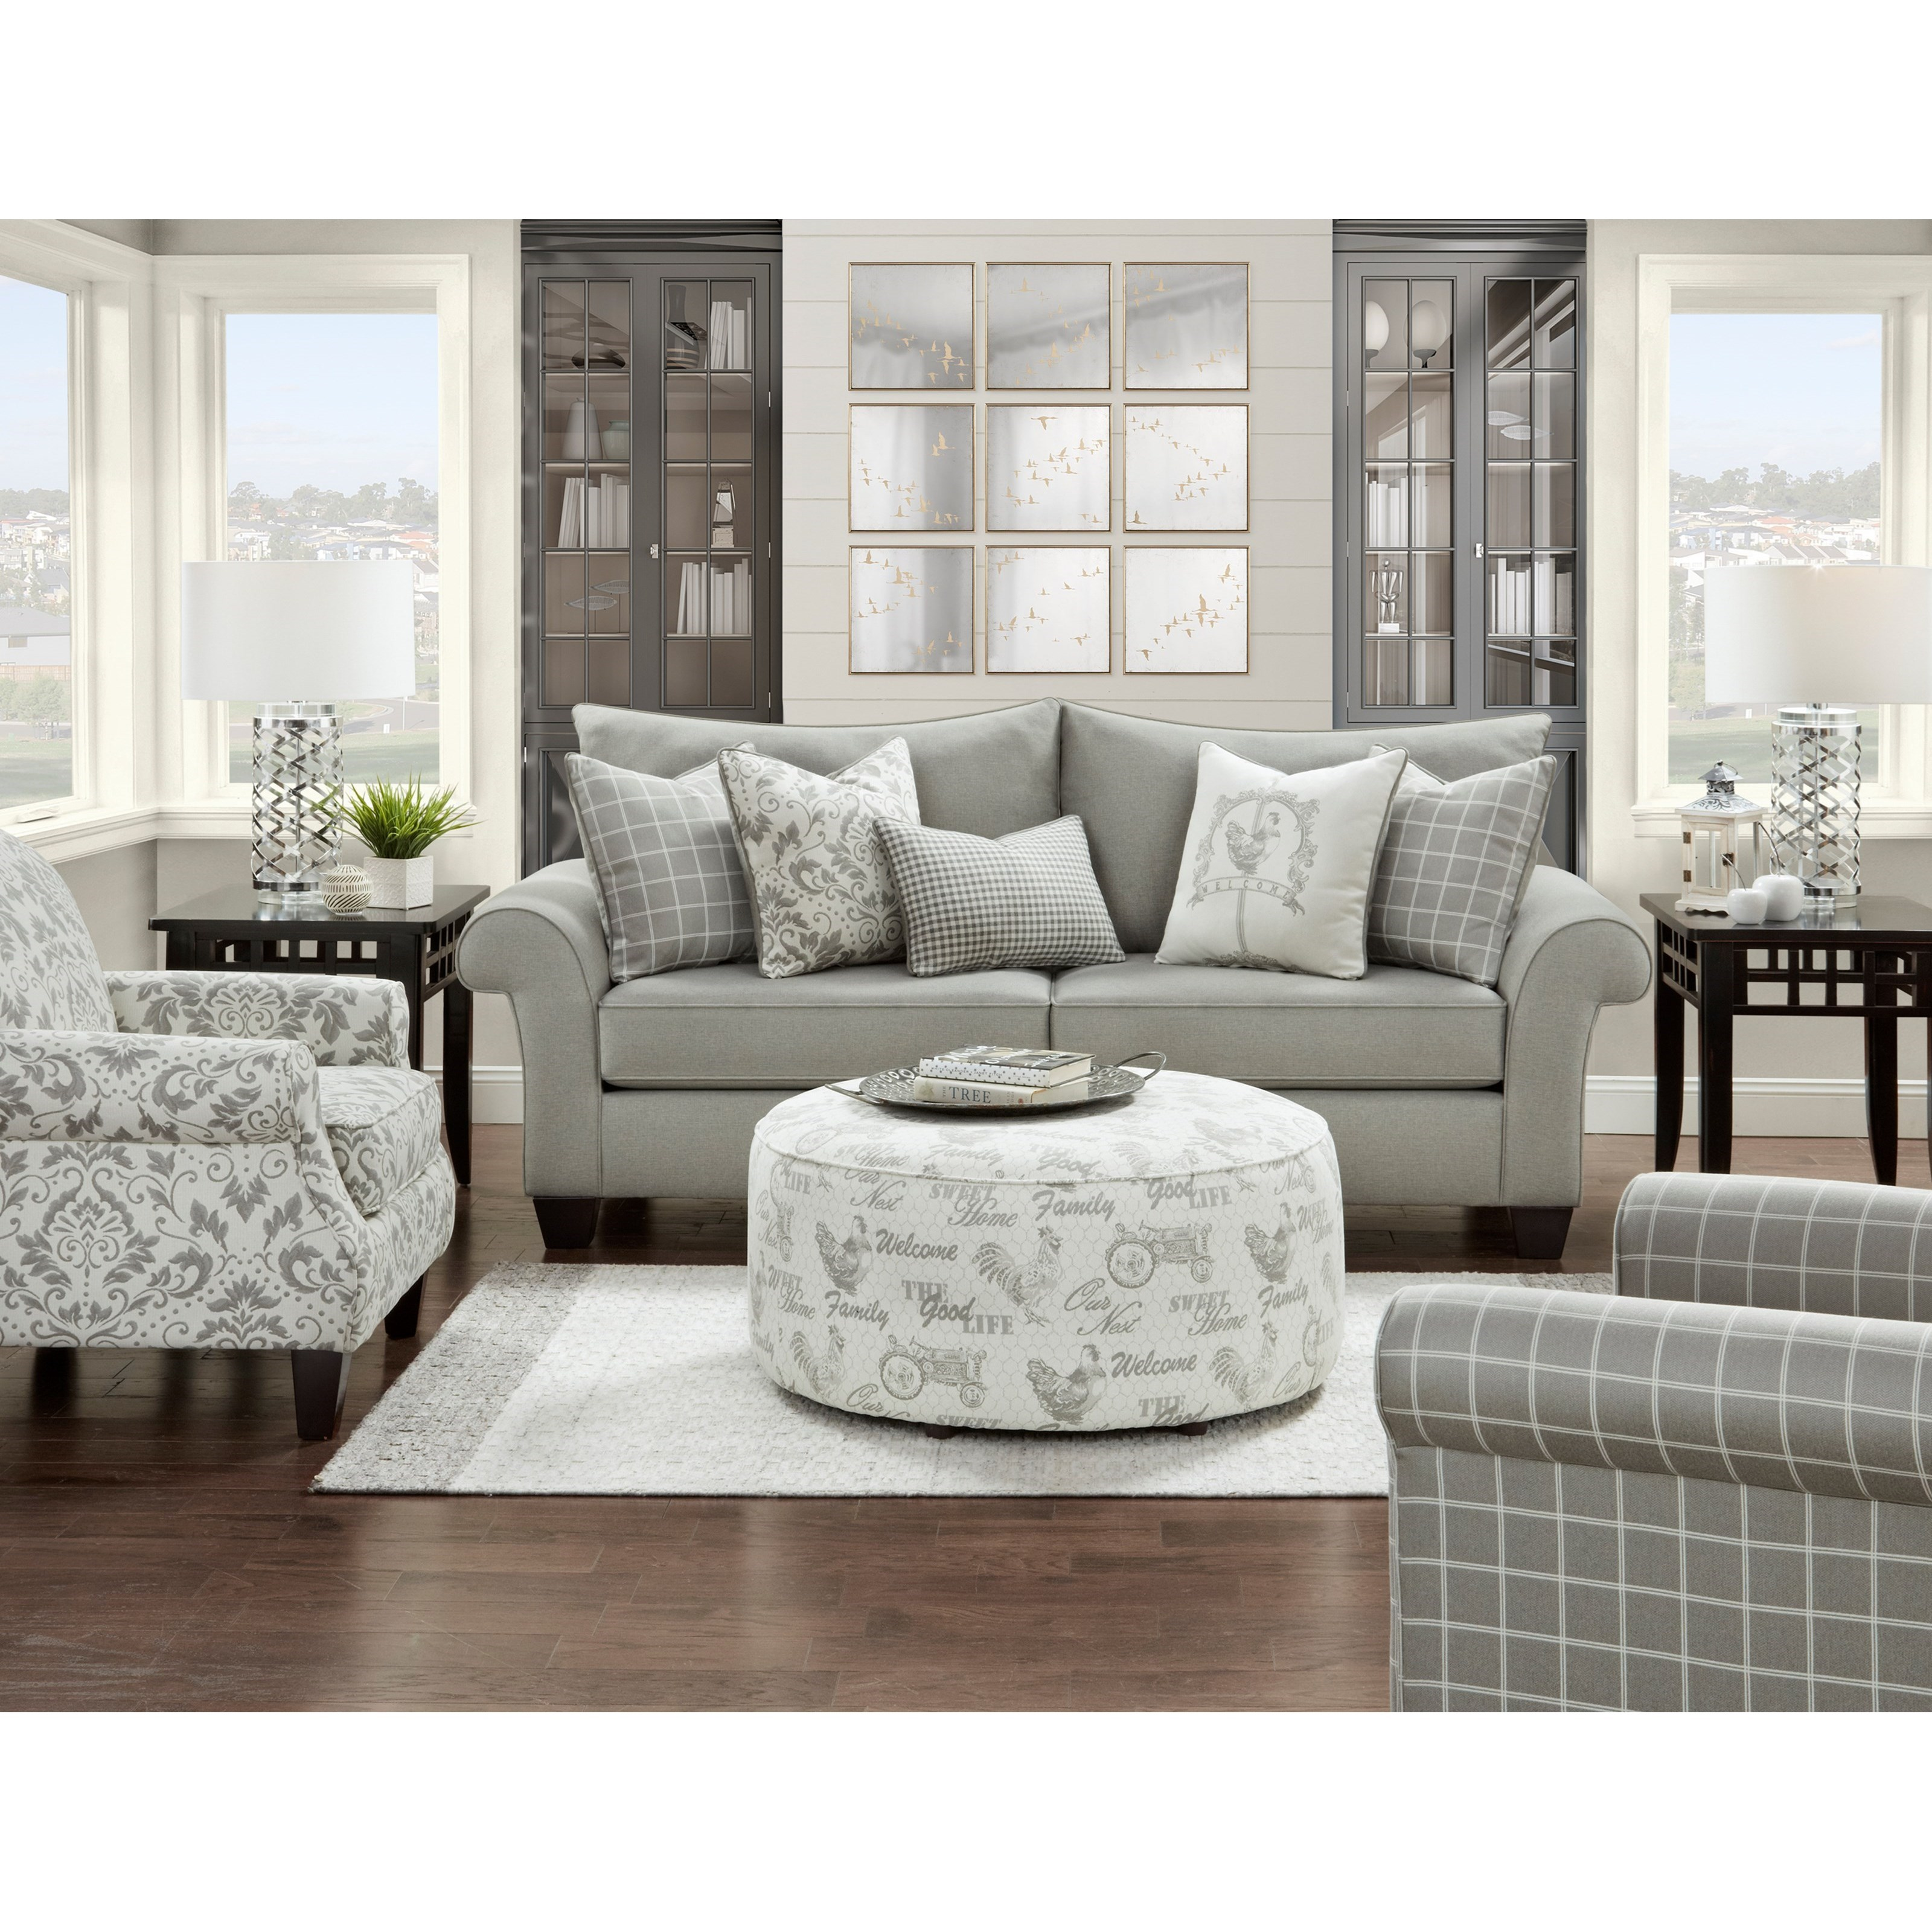 50-00 Living Room Group by Fusion Furniture at Prime Brothers Furniture